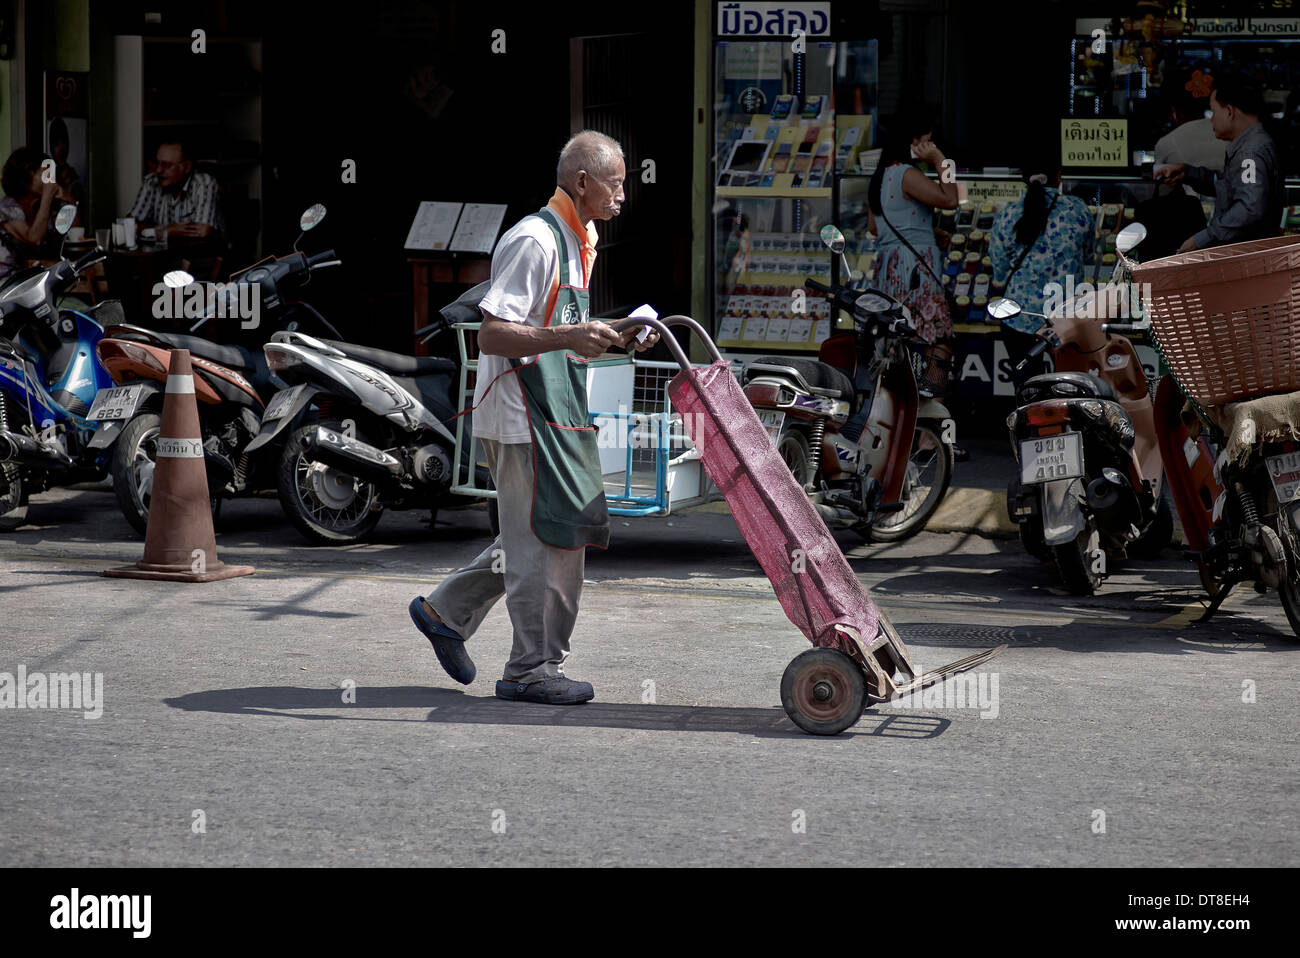 Thailand street scene with elderly man using a hand cart to deliver market goods. Thailand S. E. Asia - Stock Image